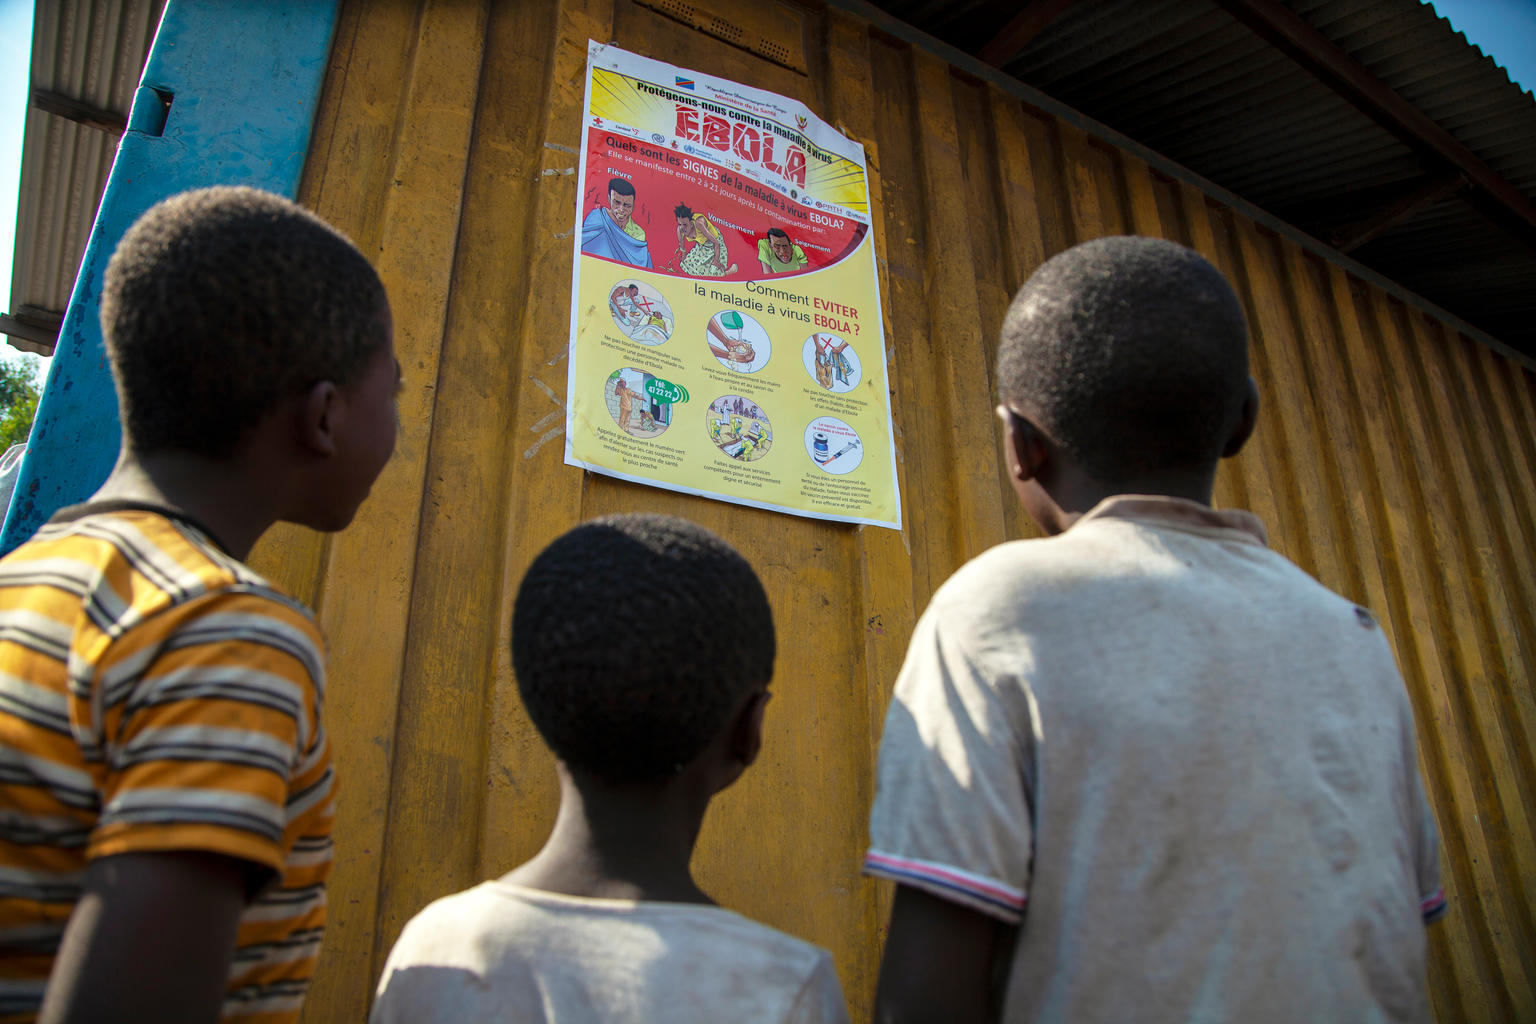 A group of young children look up at a poster that reads 'Ebola' followed by some instructions